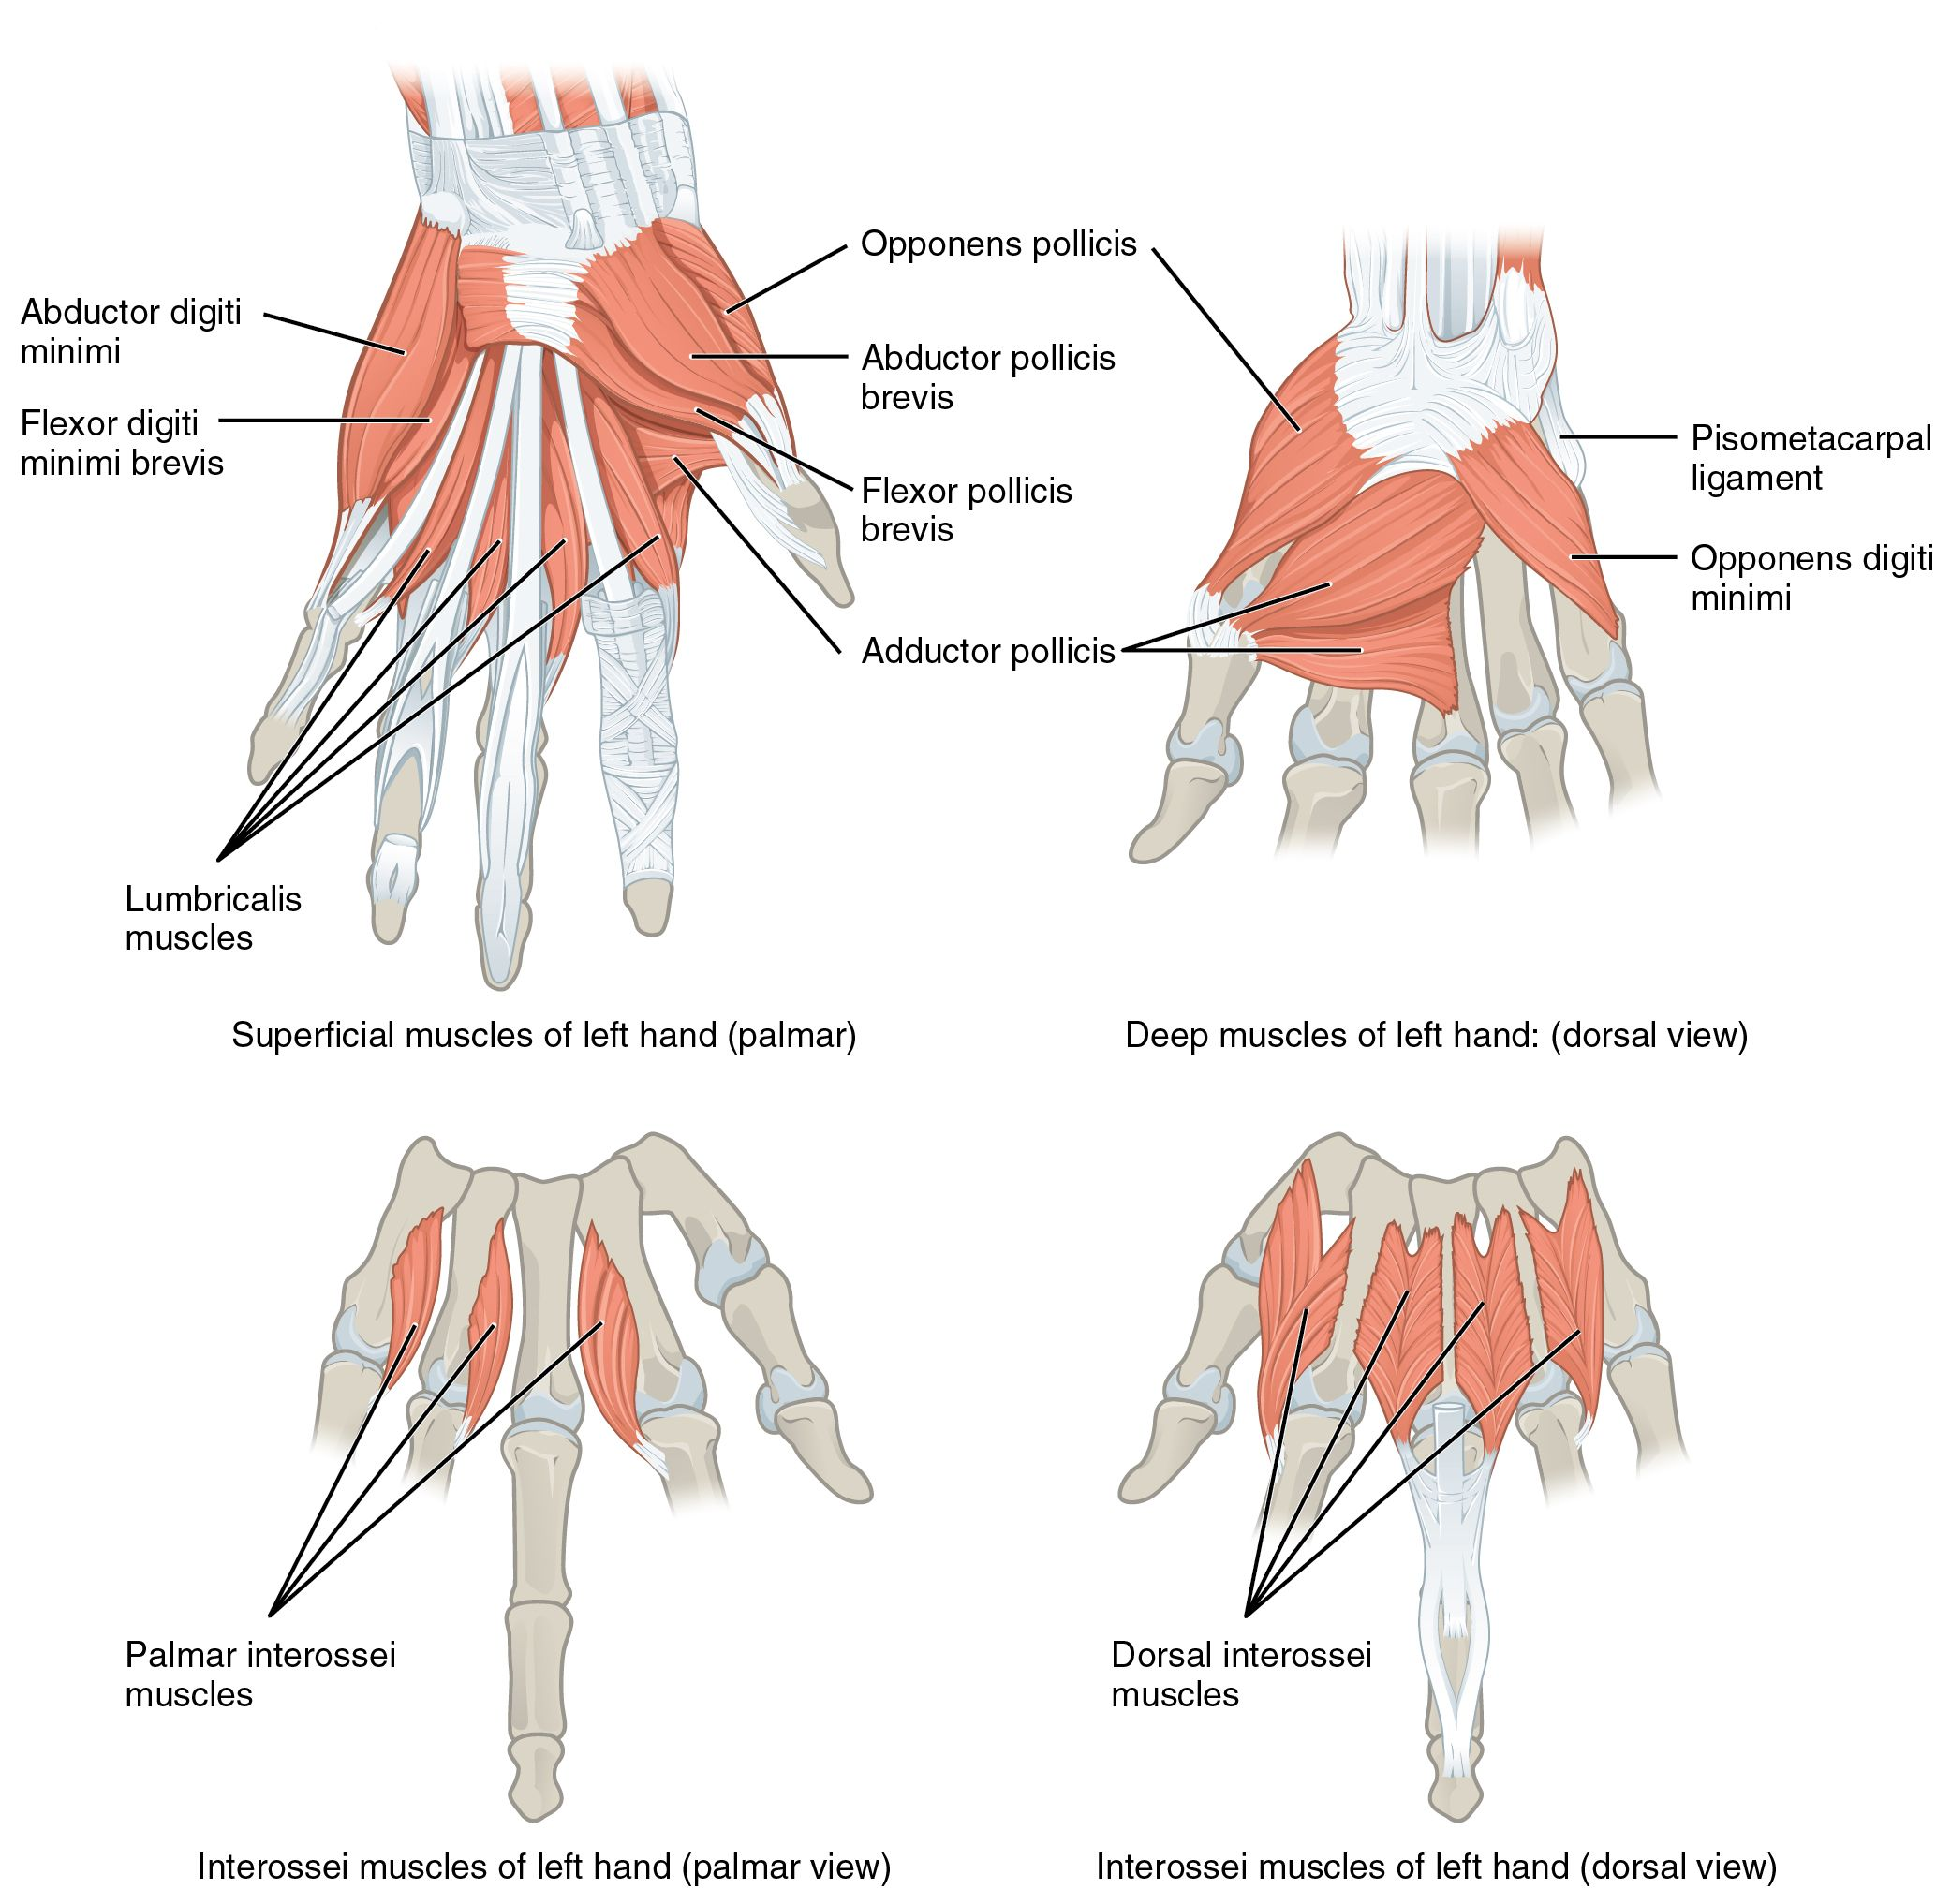 muscles of the hand | ... intrinsic muscles of the hand with the ...